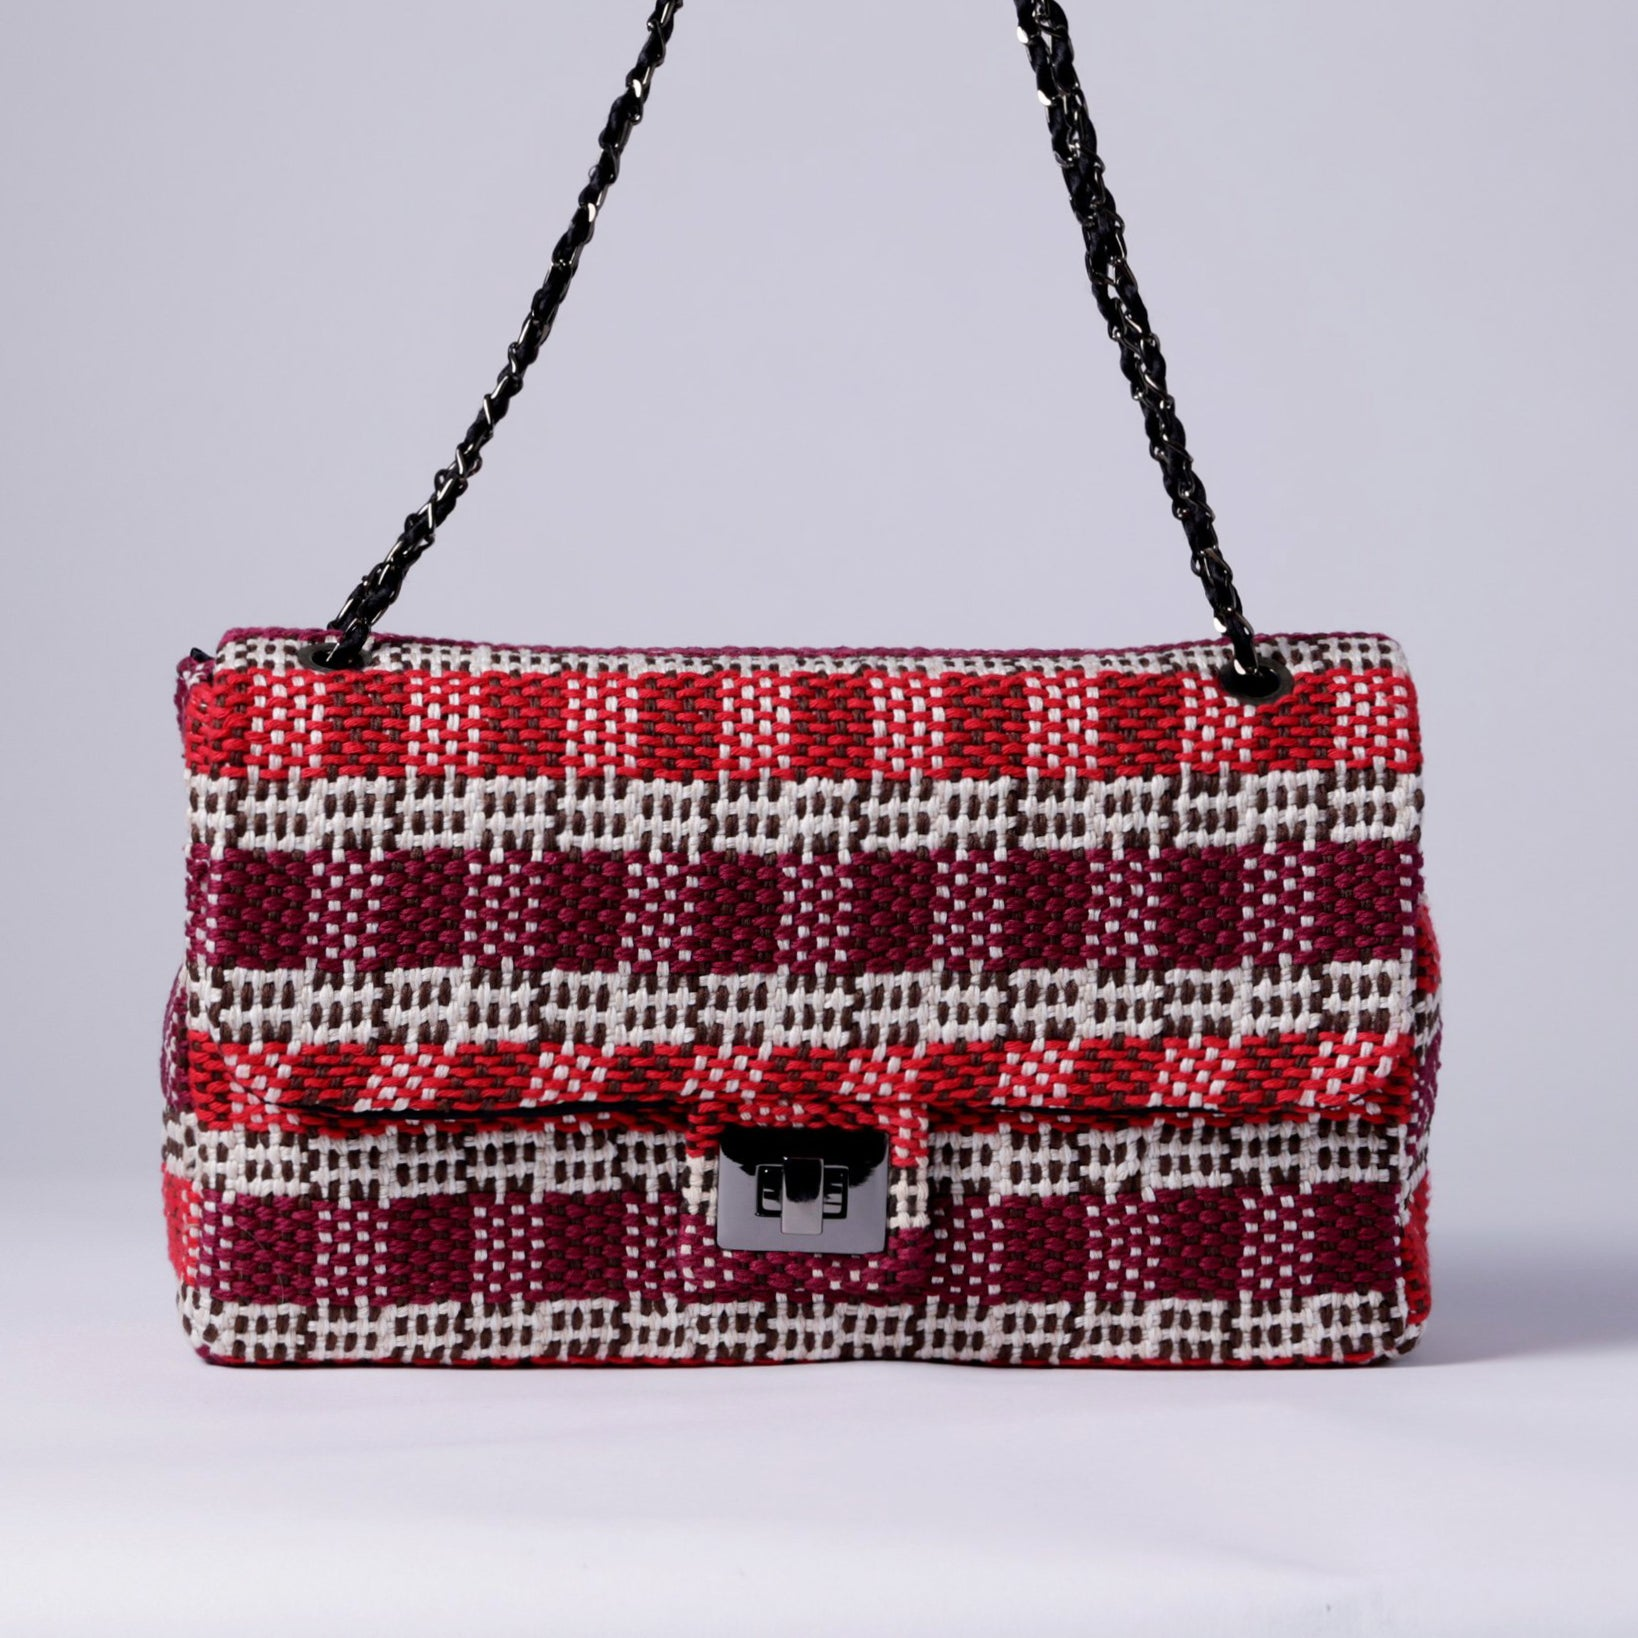 MARIA LA ROSA, HANDBAG, STRIPES